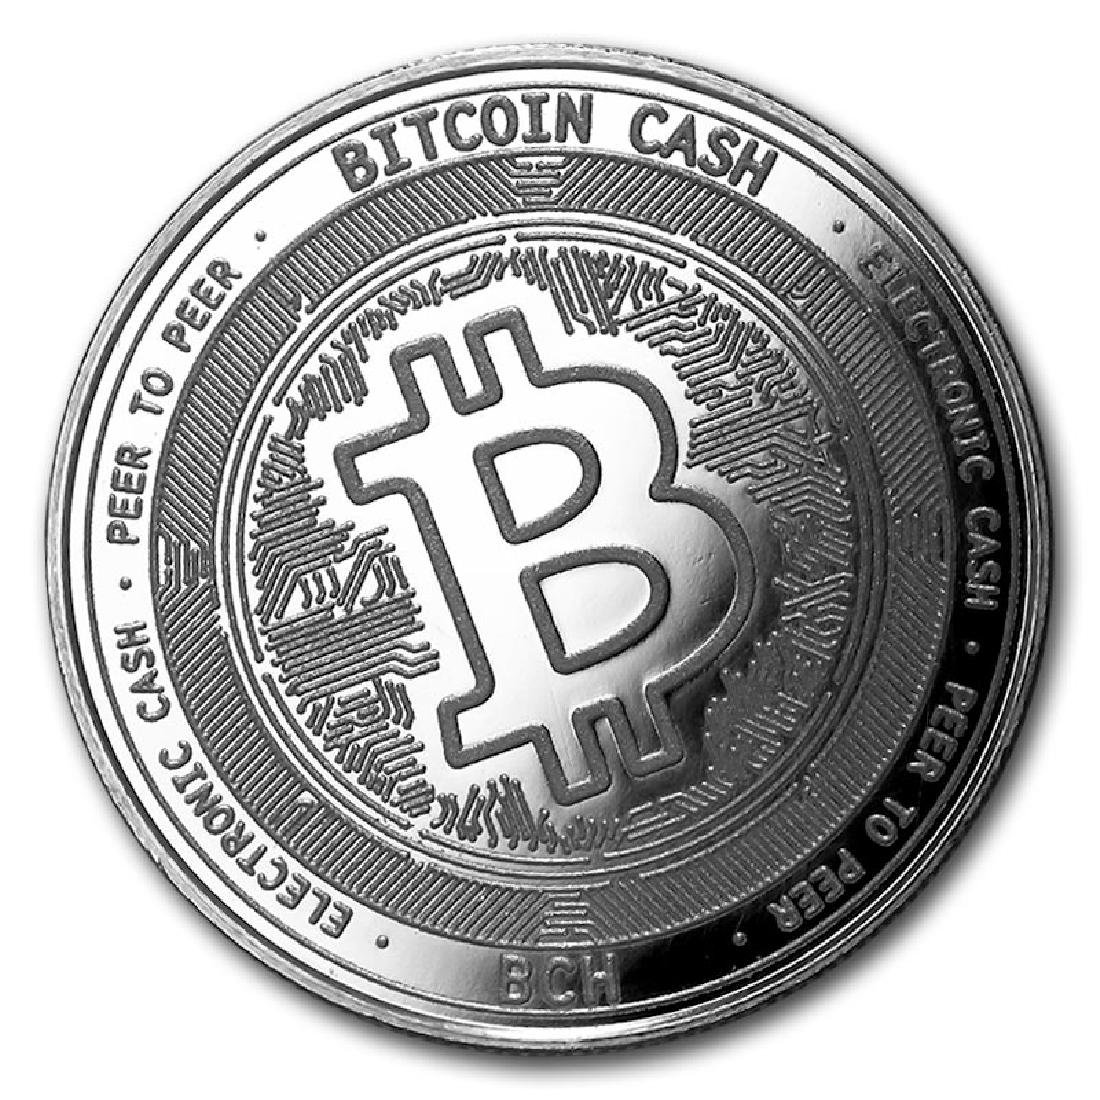 1 oz Silver Bullion Cryptocurrency Bitcoin Cash Round .